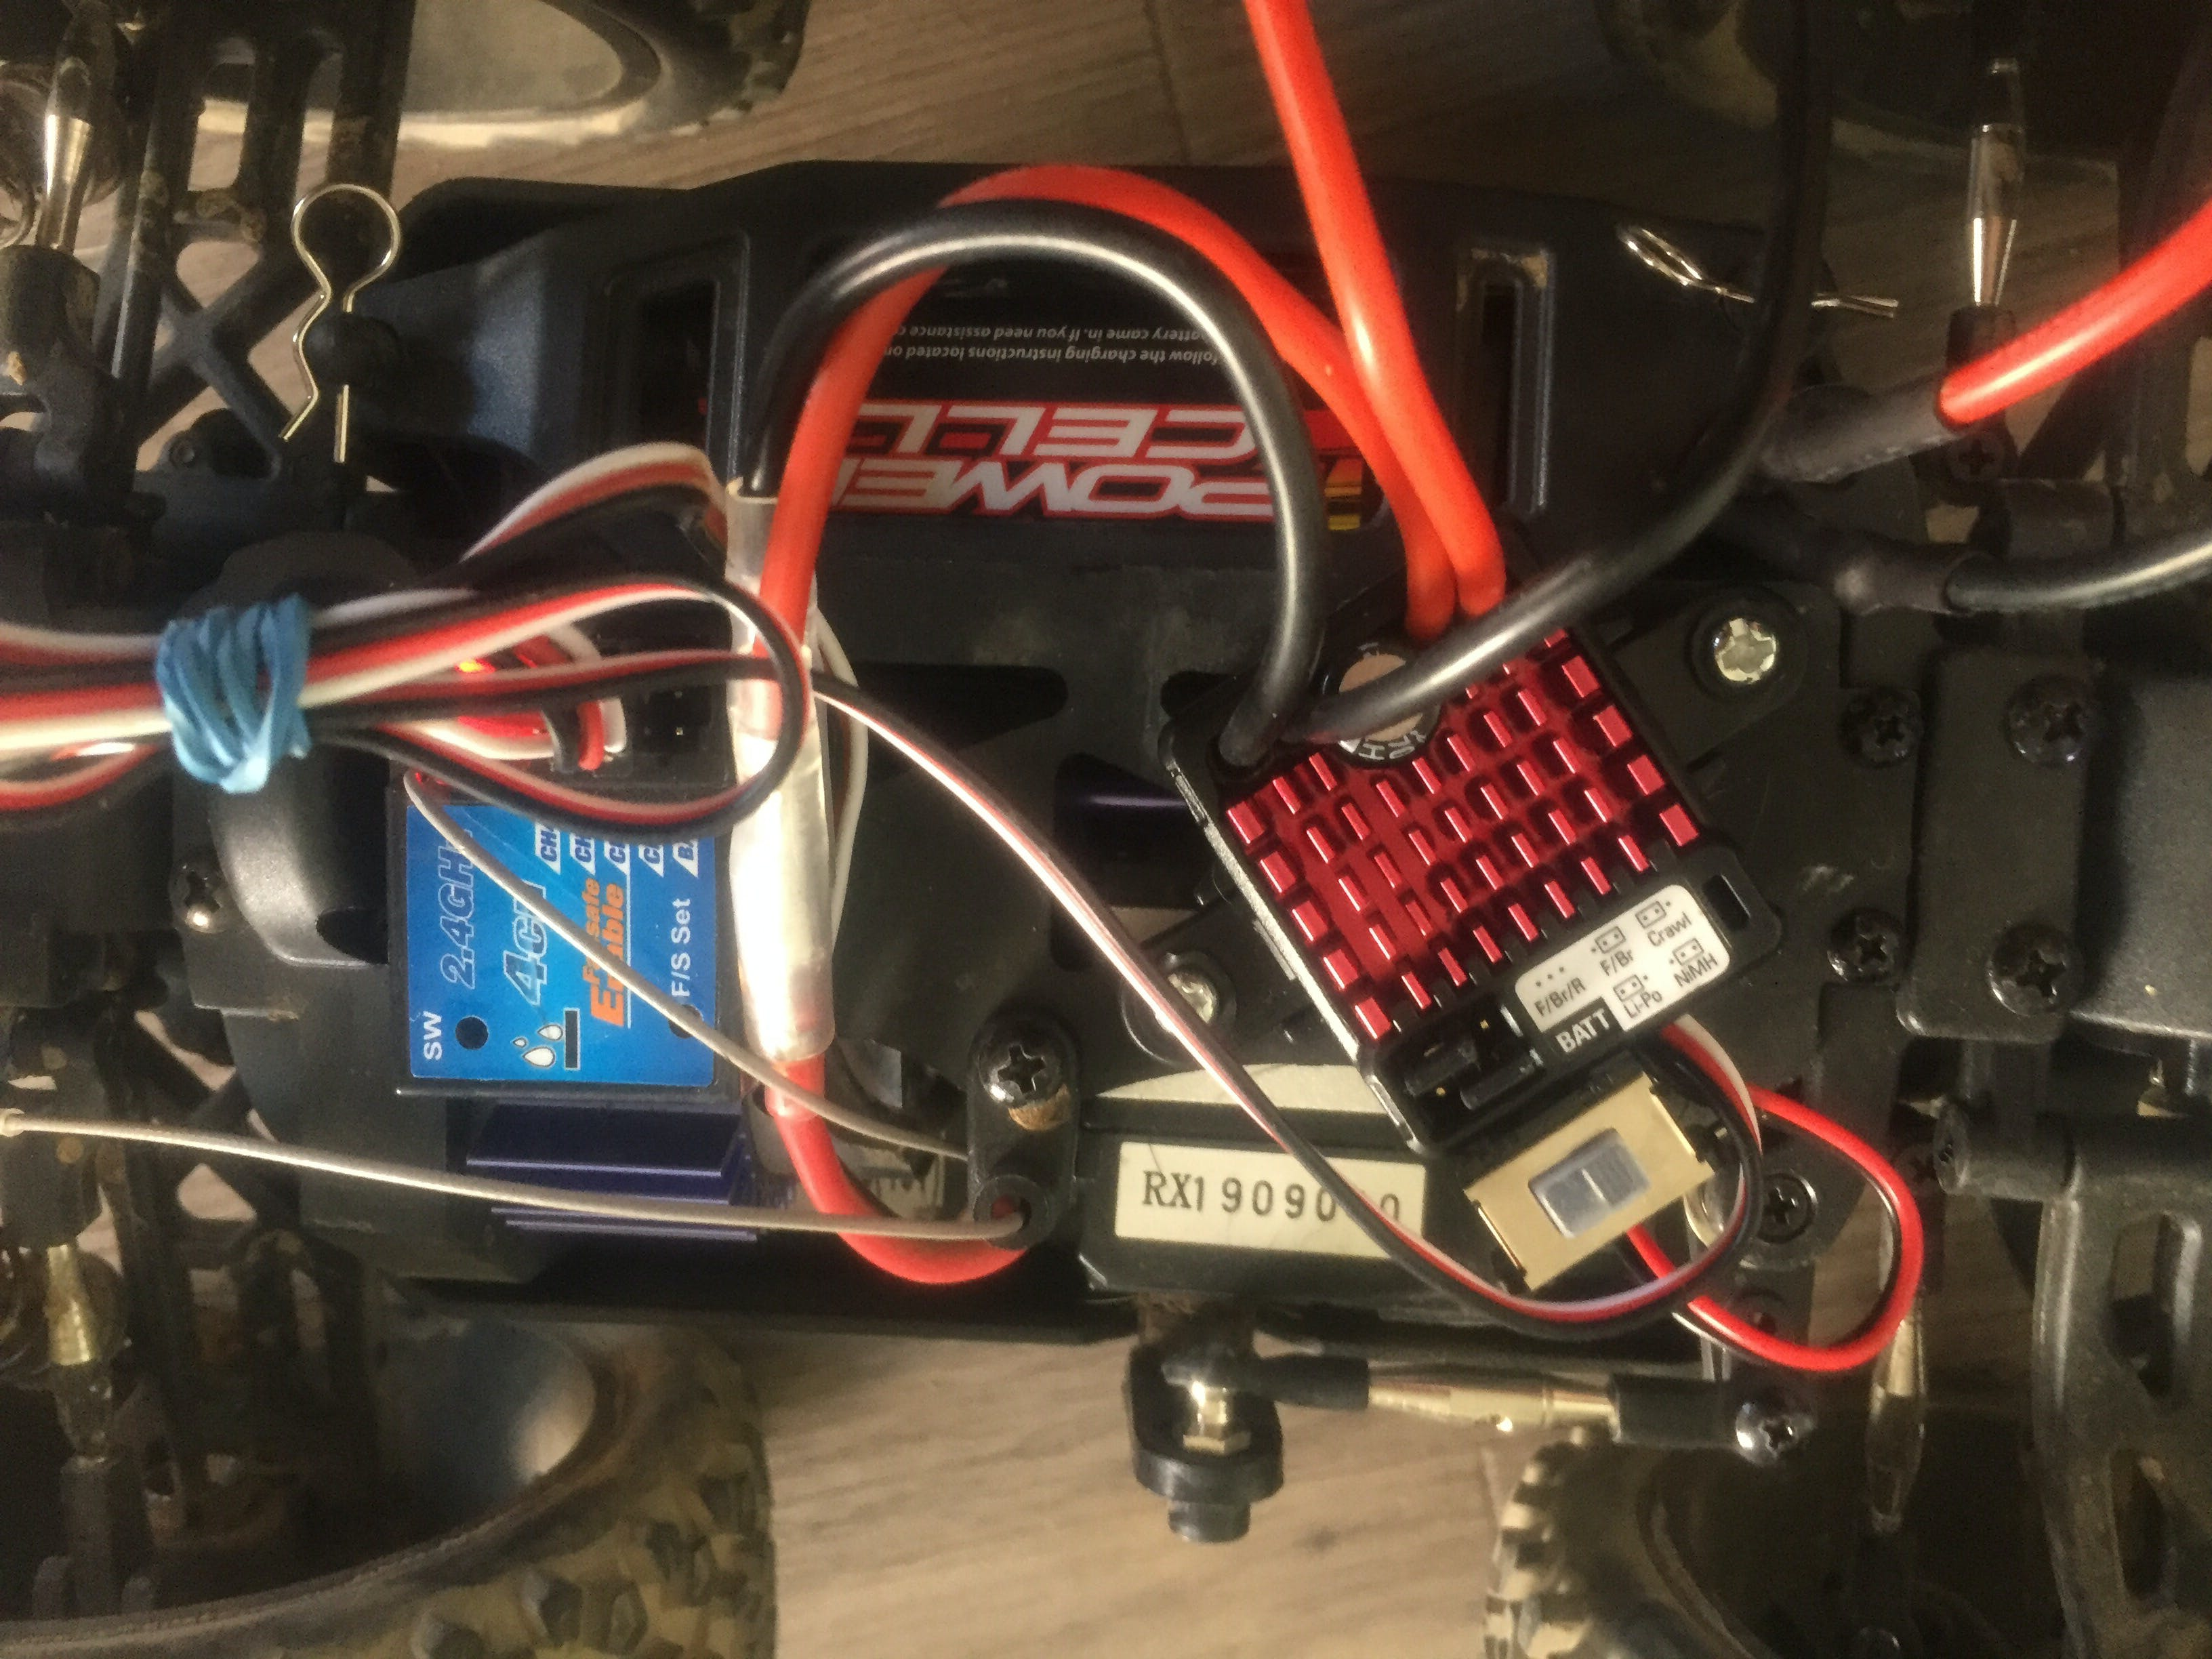 ECU upgrade makes reverse easier with PS3 six axis controller